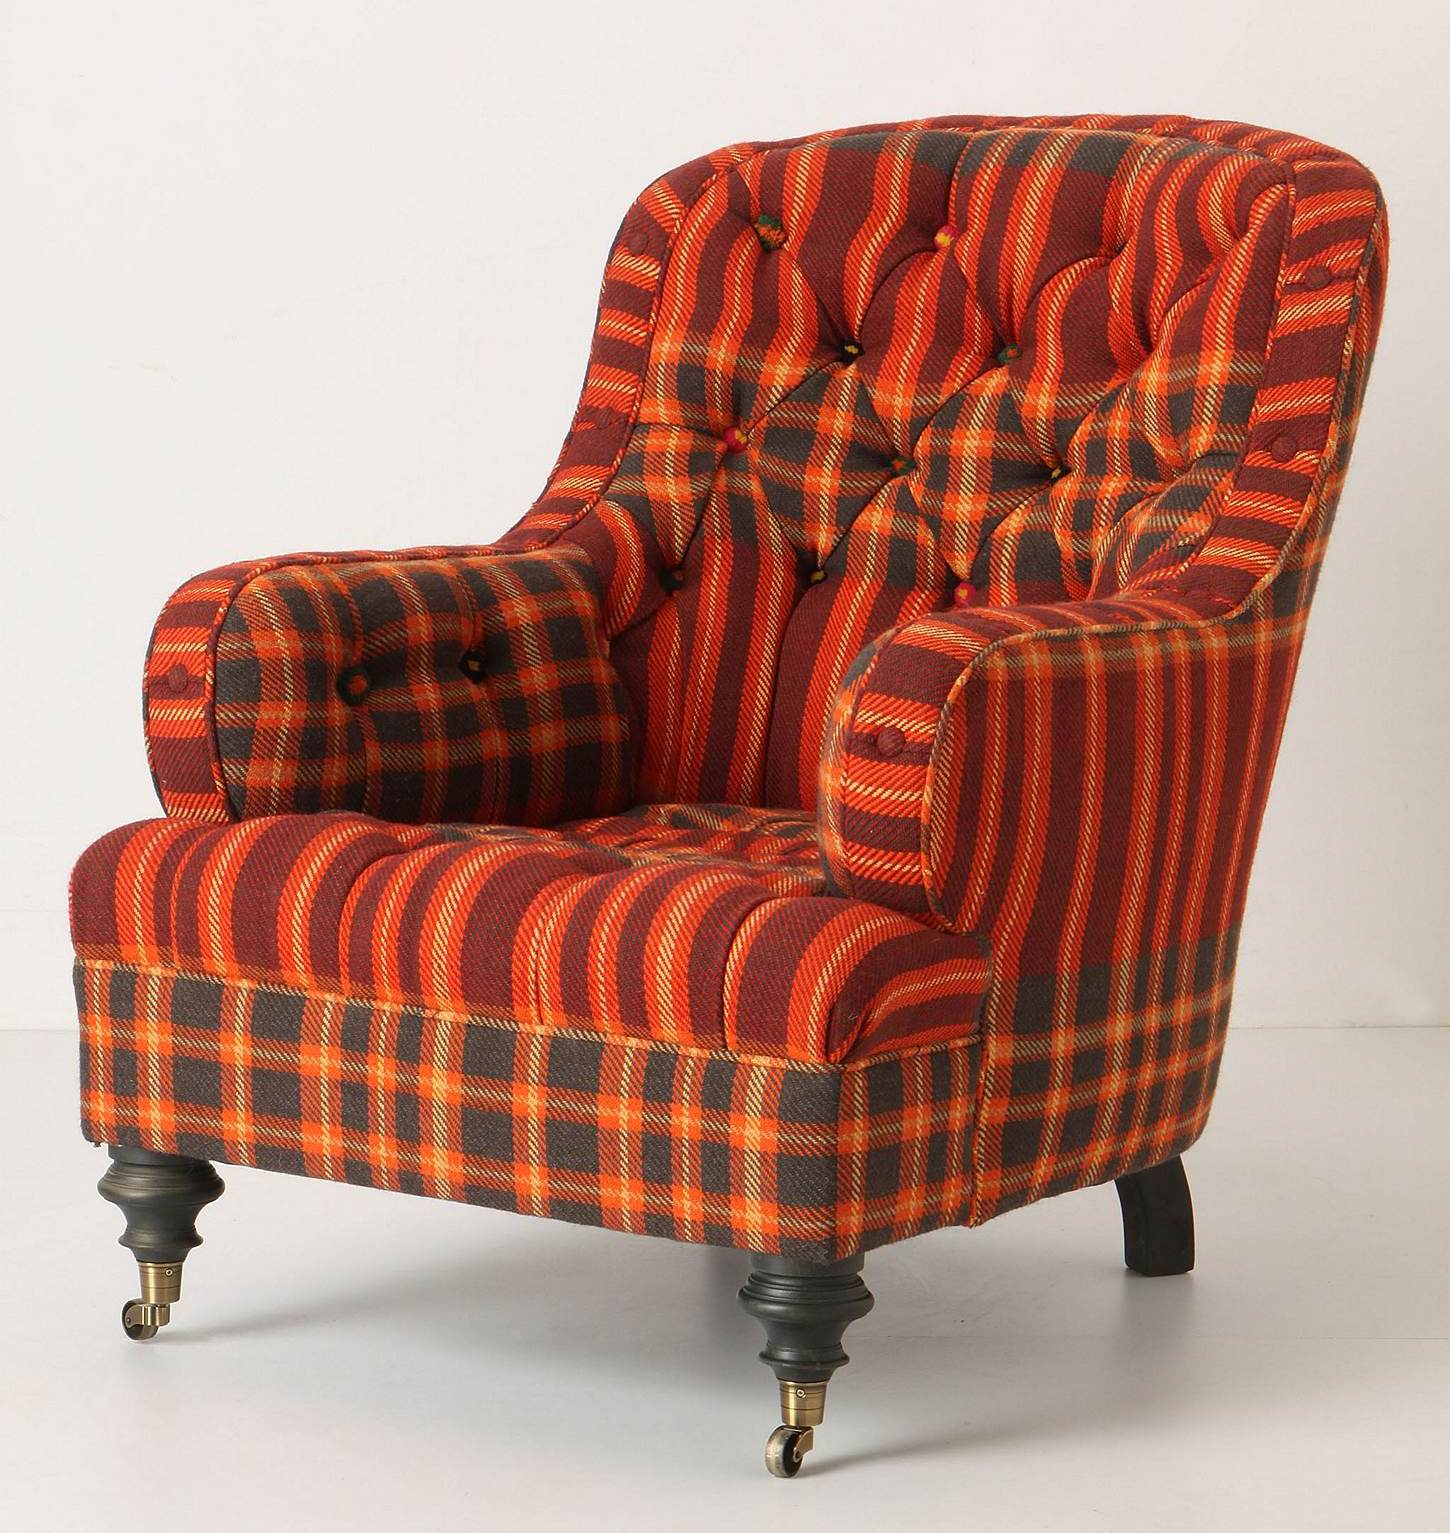 Plaid Chair Mad For Plaid Tilton Fenwick Curators Of Chic